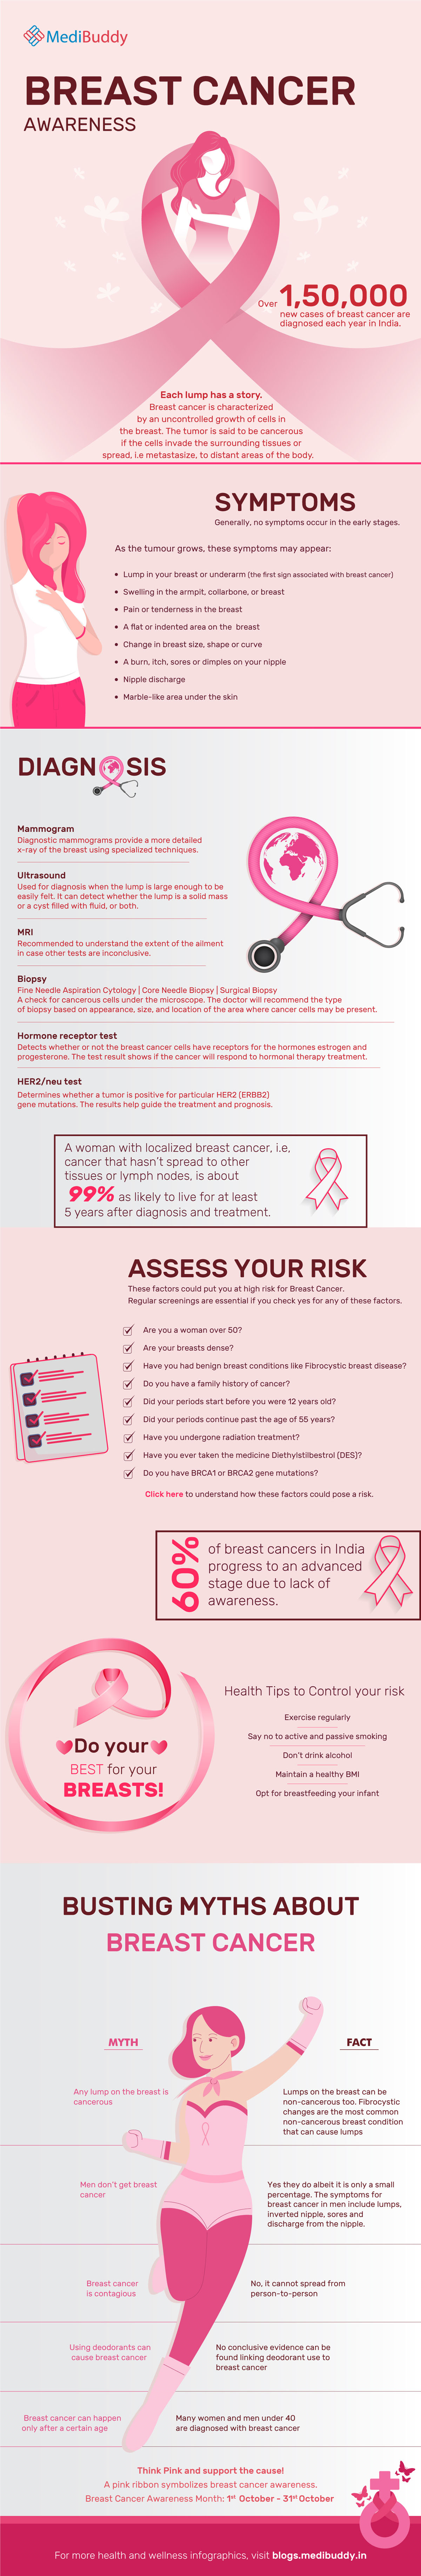 Breast Cancer: Symptoms, Diagnosis, Risk Assessment & Facts